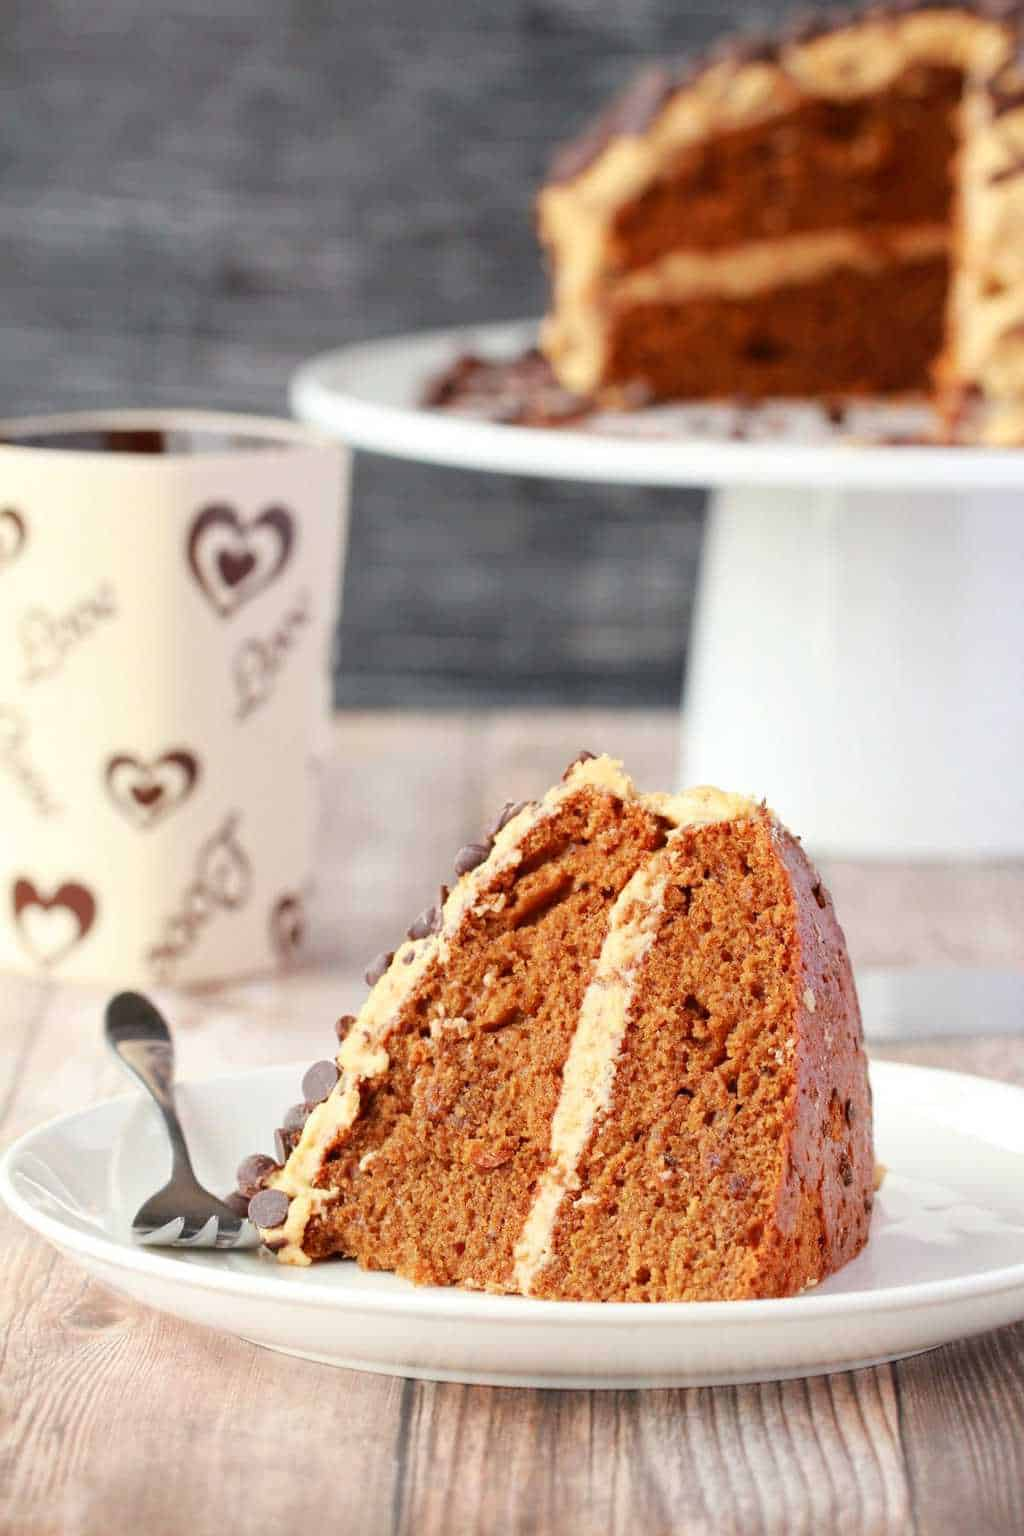 Insanely delicious vegan coffee cake with kahlua frosting. This isn't just a cake to eat with your coffee, this is fabulously decadent coffee flavored cake! #vegan #lovingitvegan #coffeecake #vegancake #dairyfree #kahluafrosting